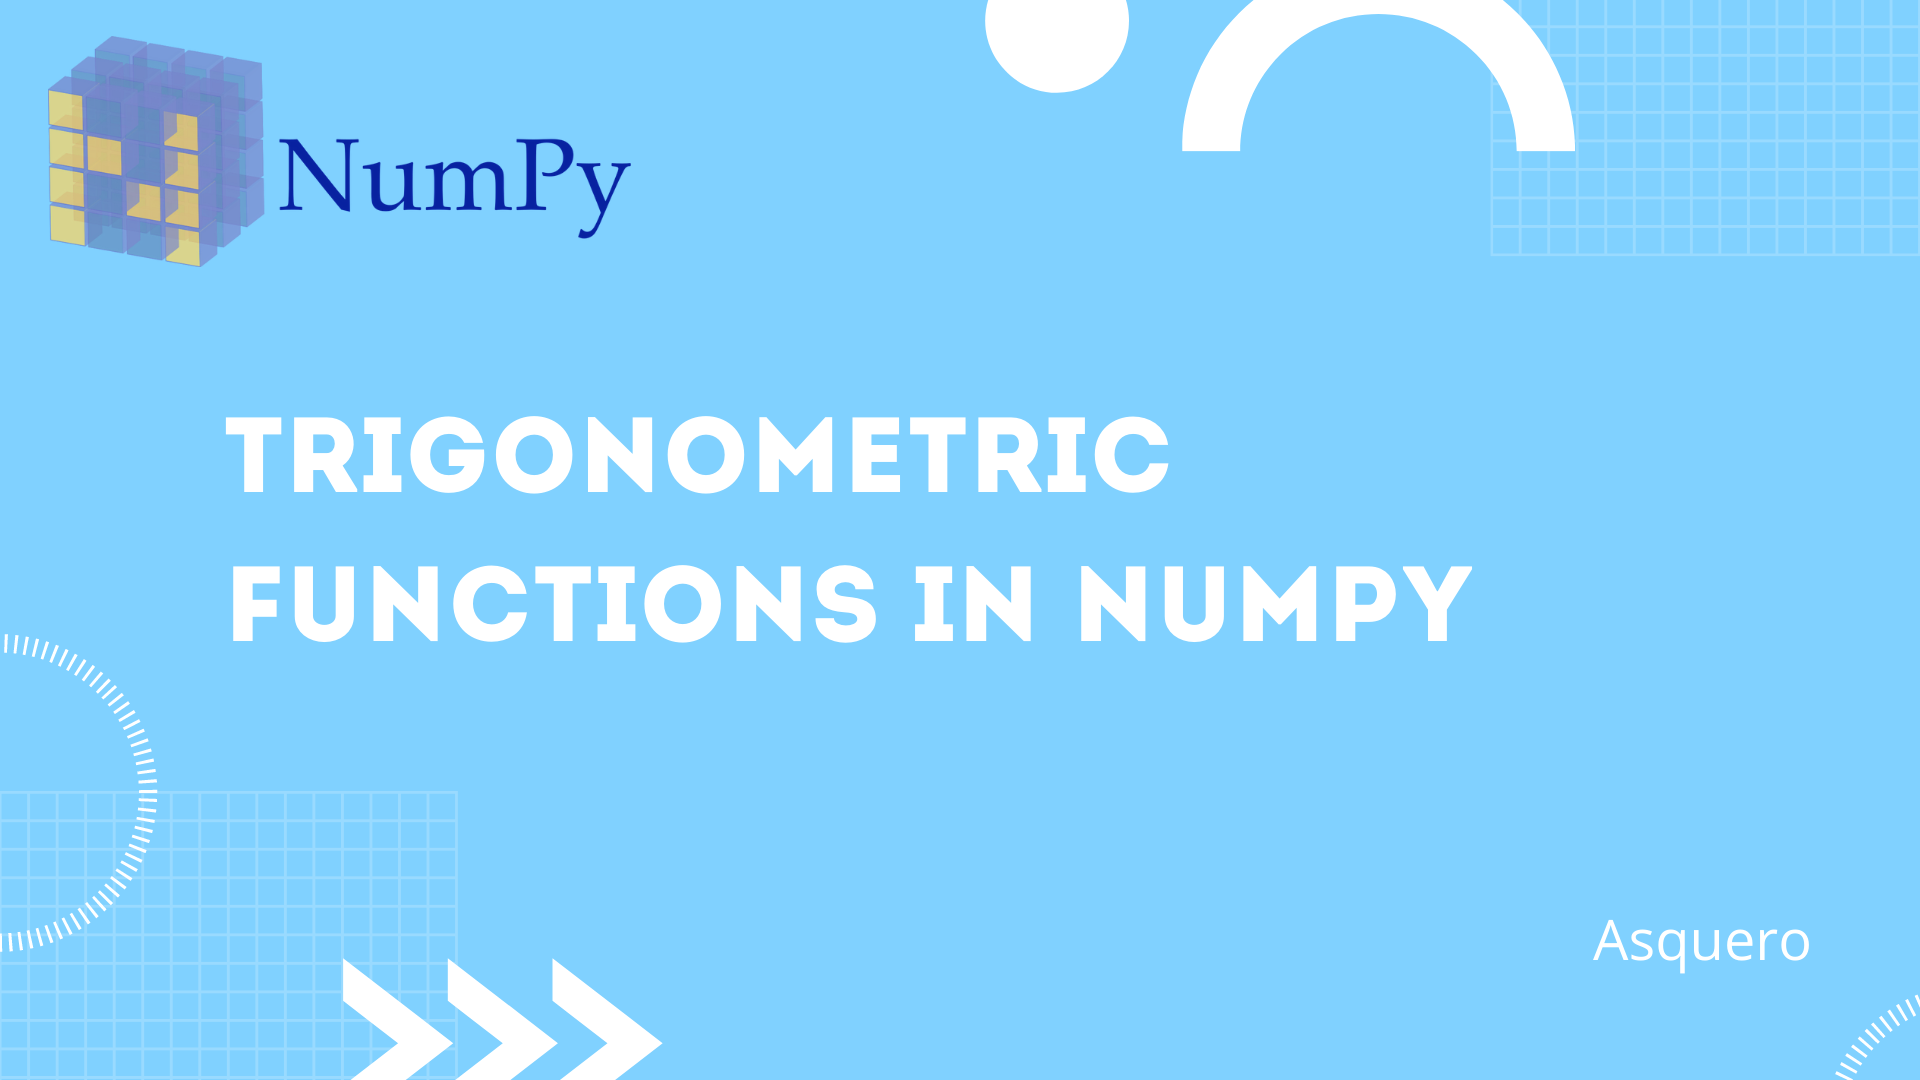 Trigonometric Functions in NumPy